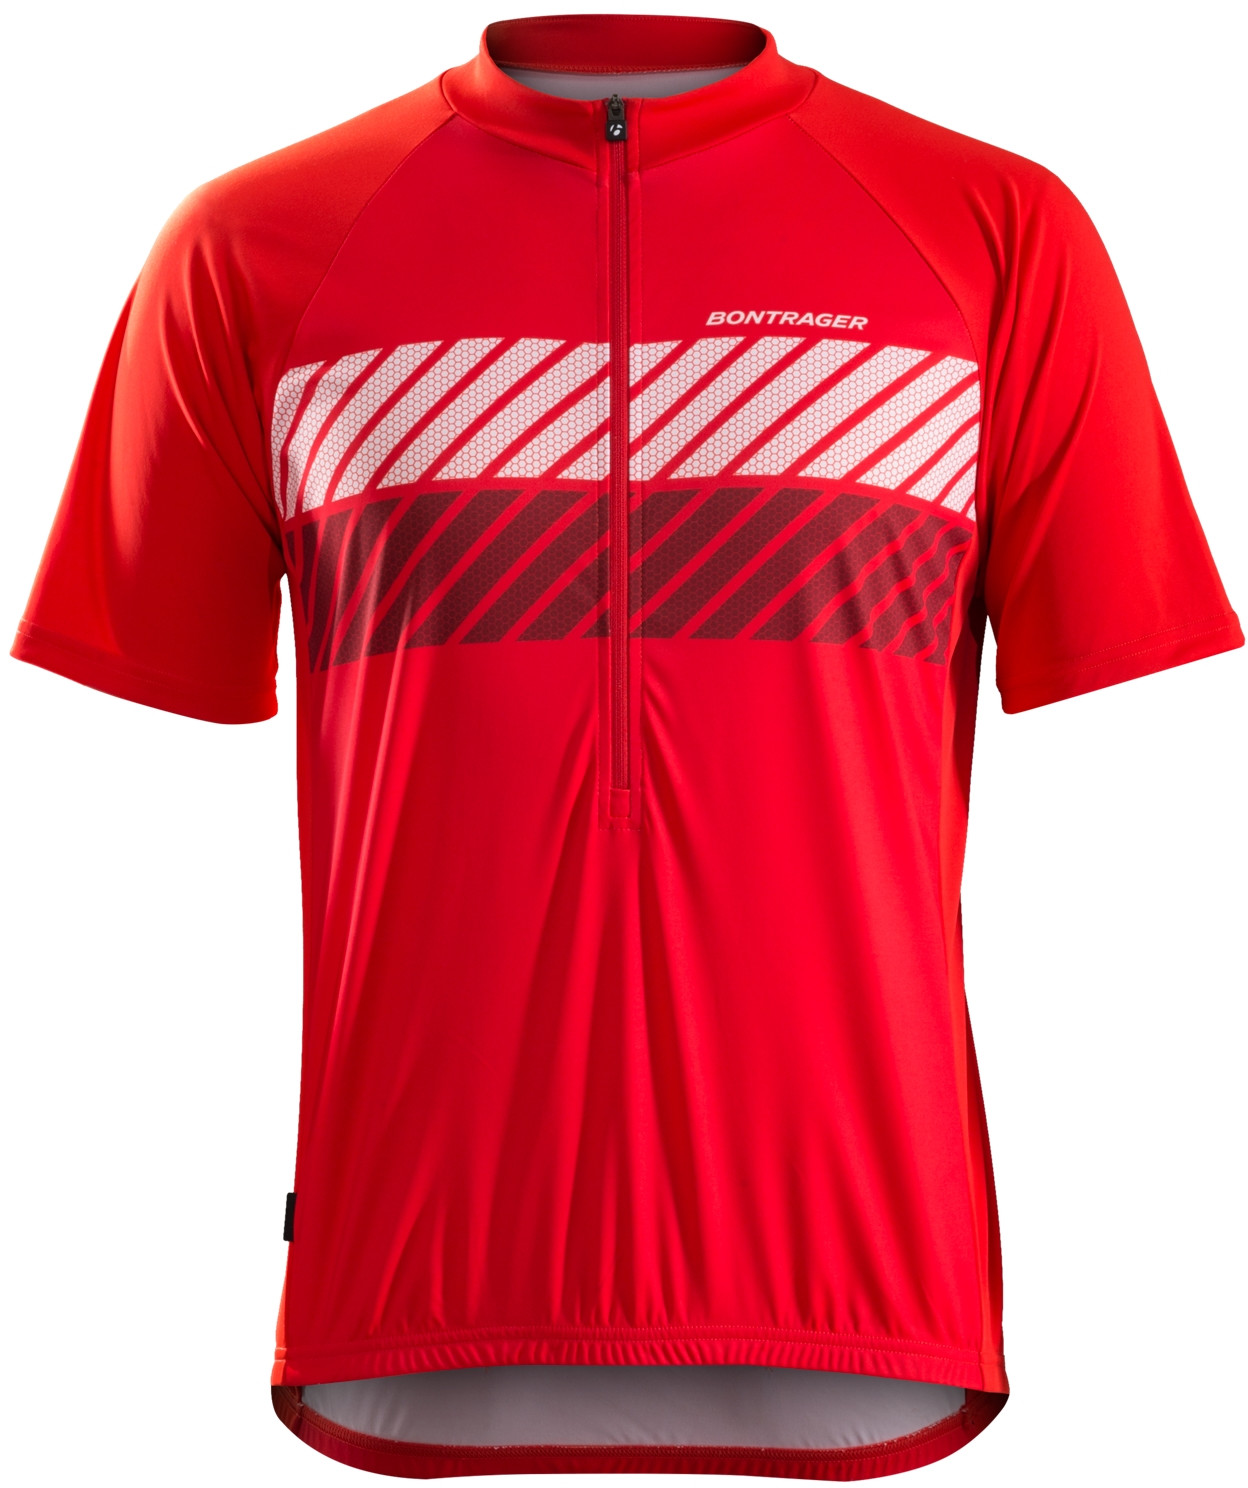 61890d52f Bontrager Solstice Cycling Jersey - Mens - Jerseys - Clothing - Shop ...